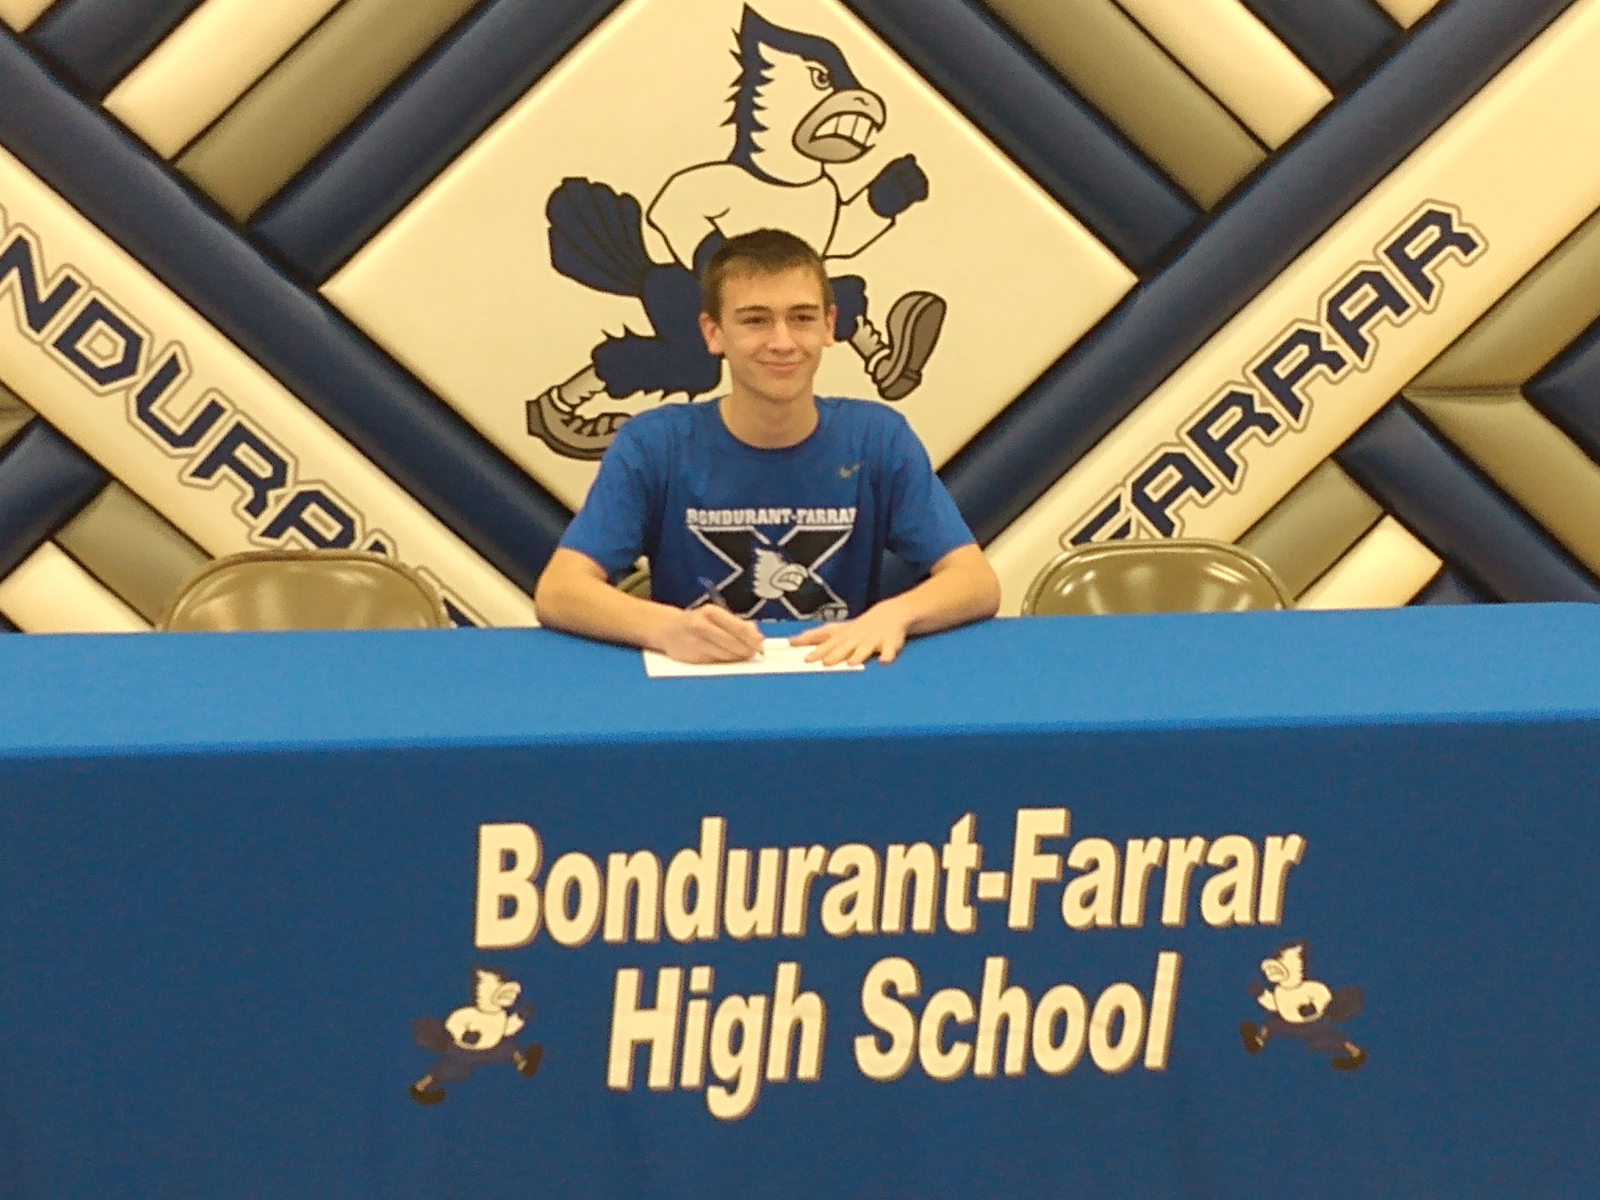 DK Cross-Country Signing